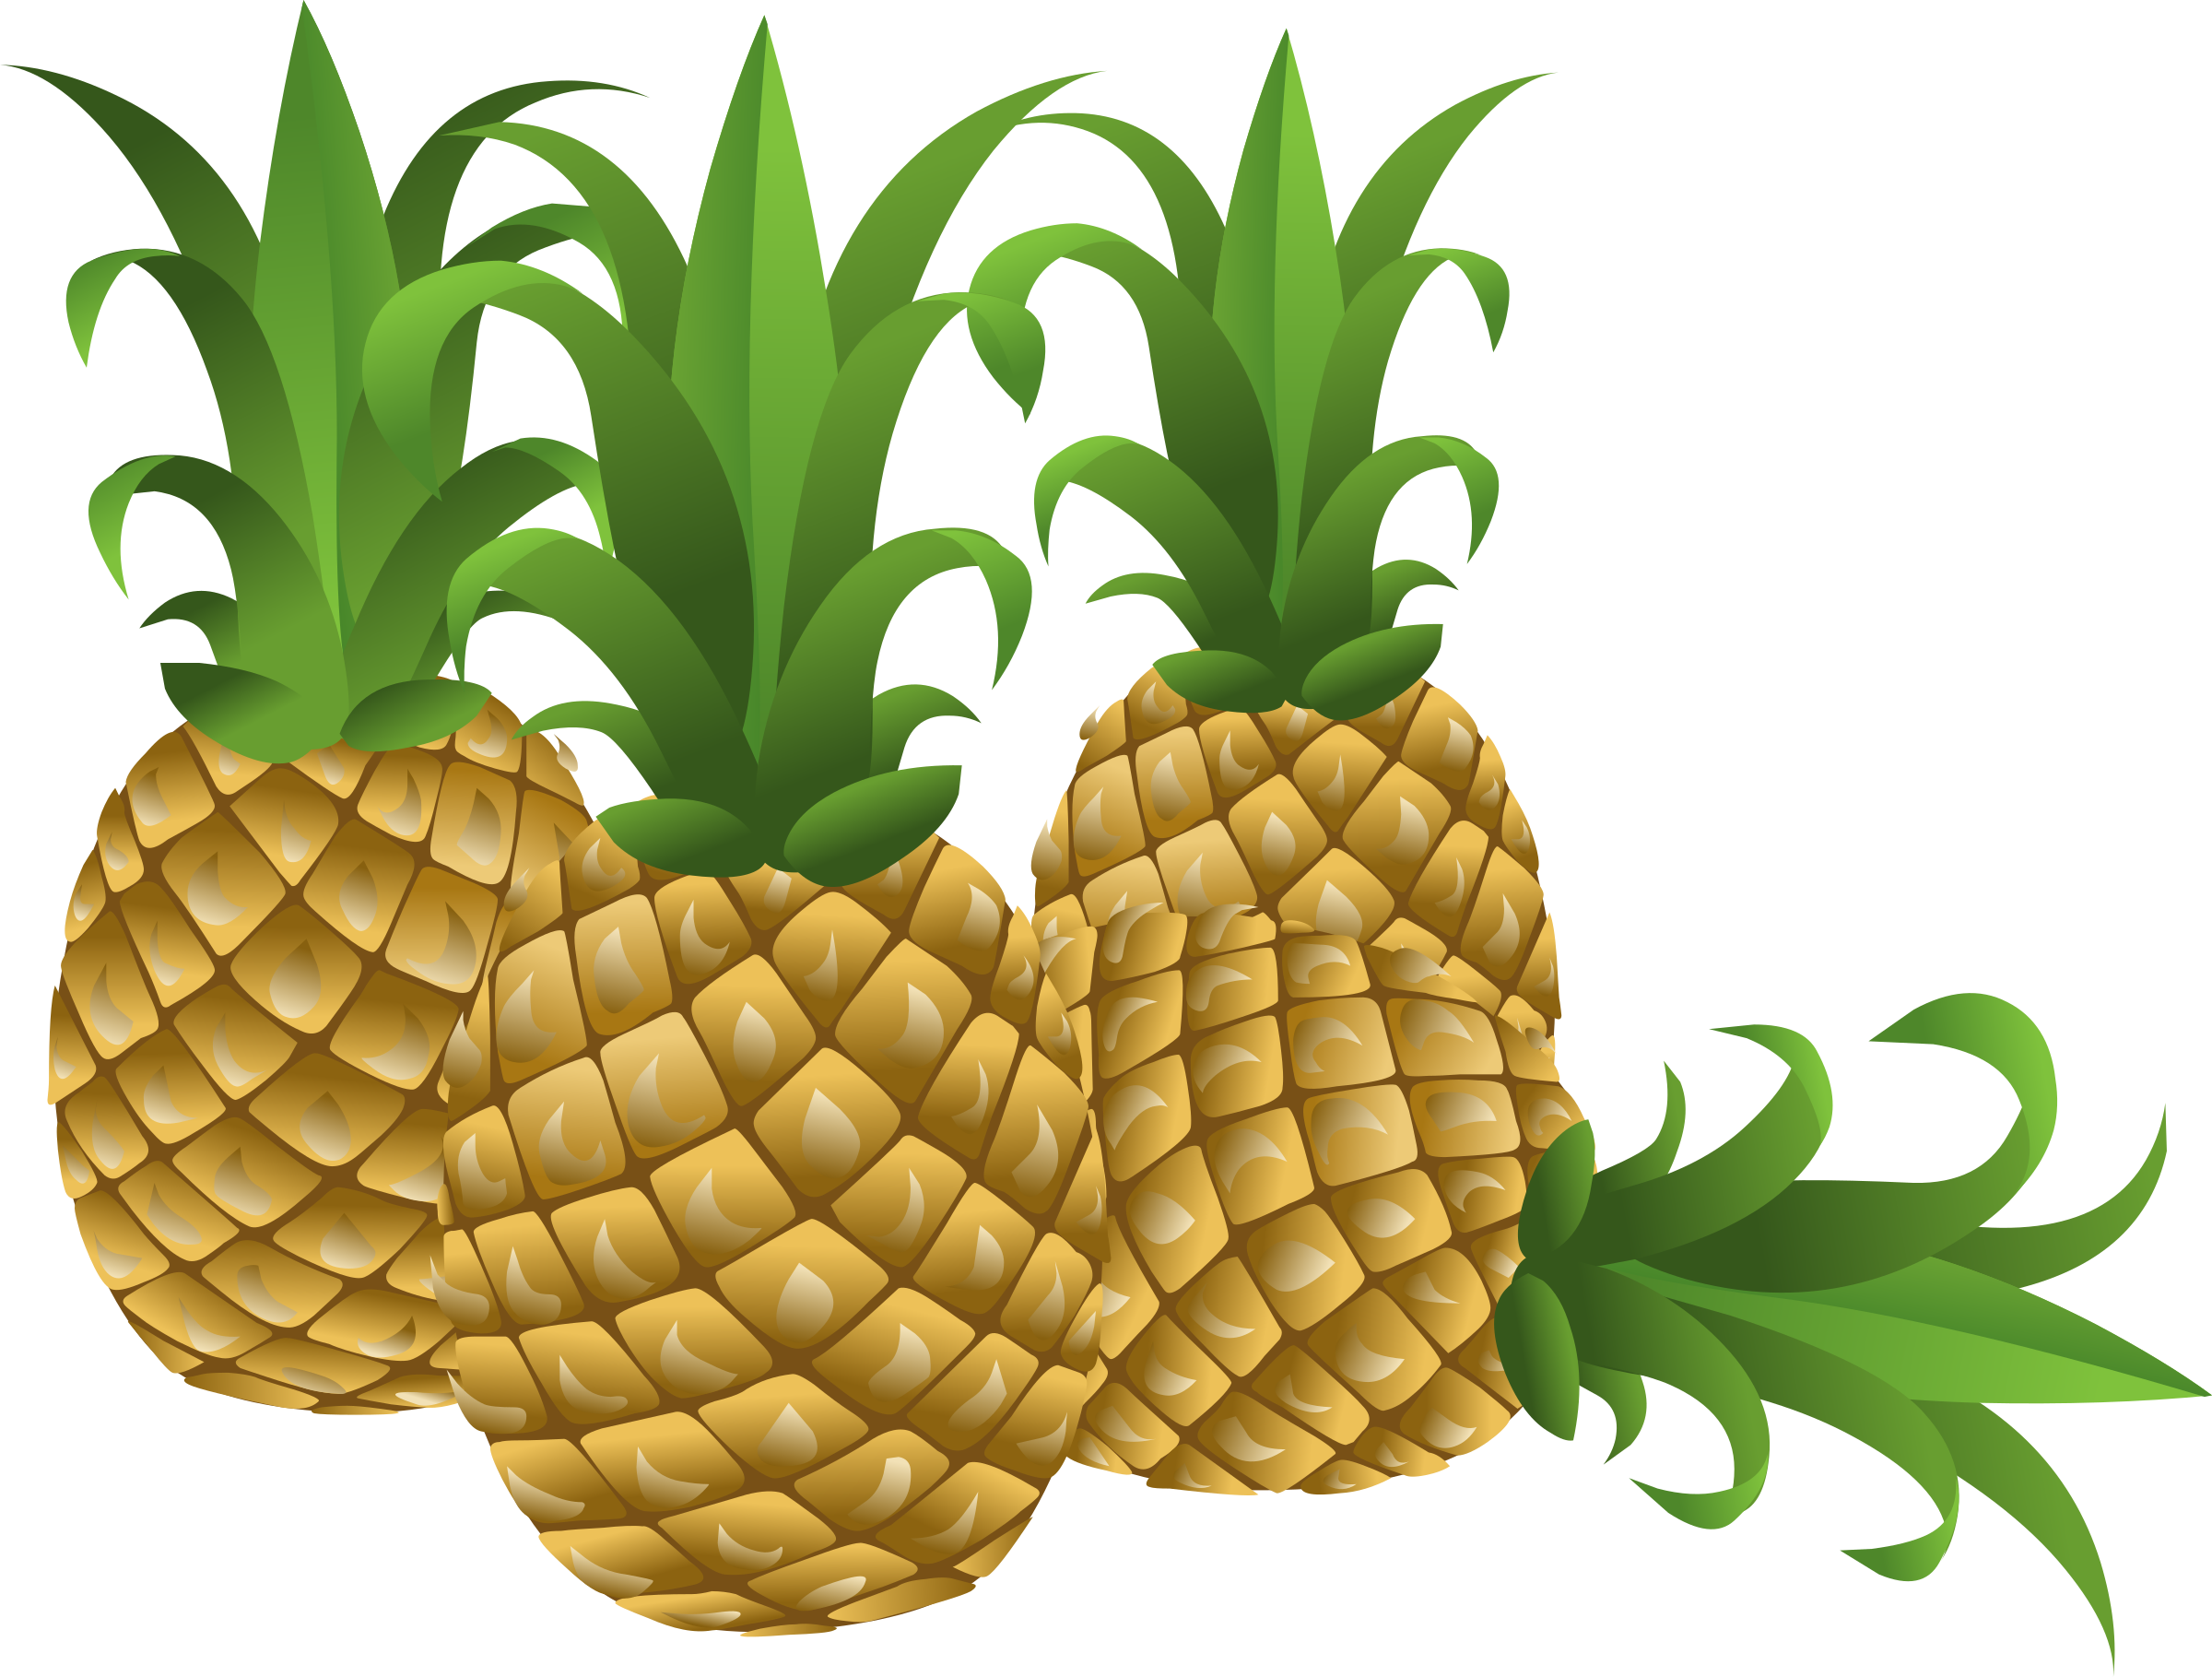 Food big image png. Pineapple clipart pdf